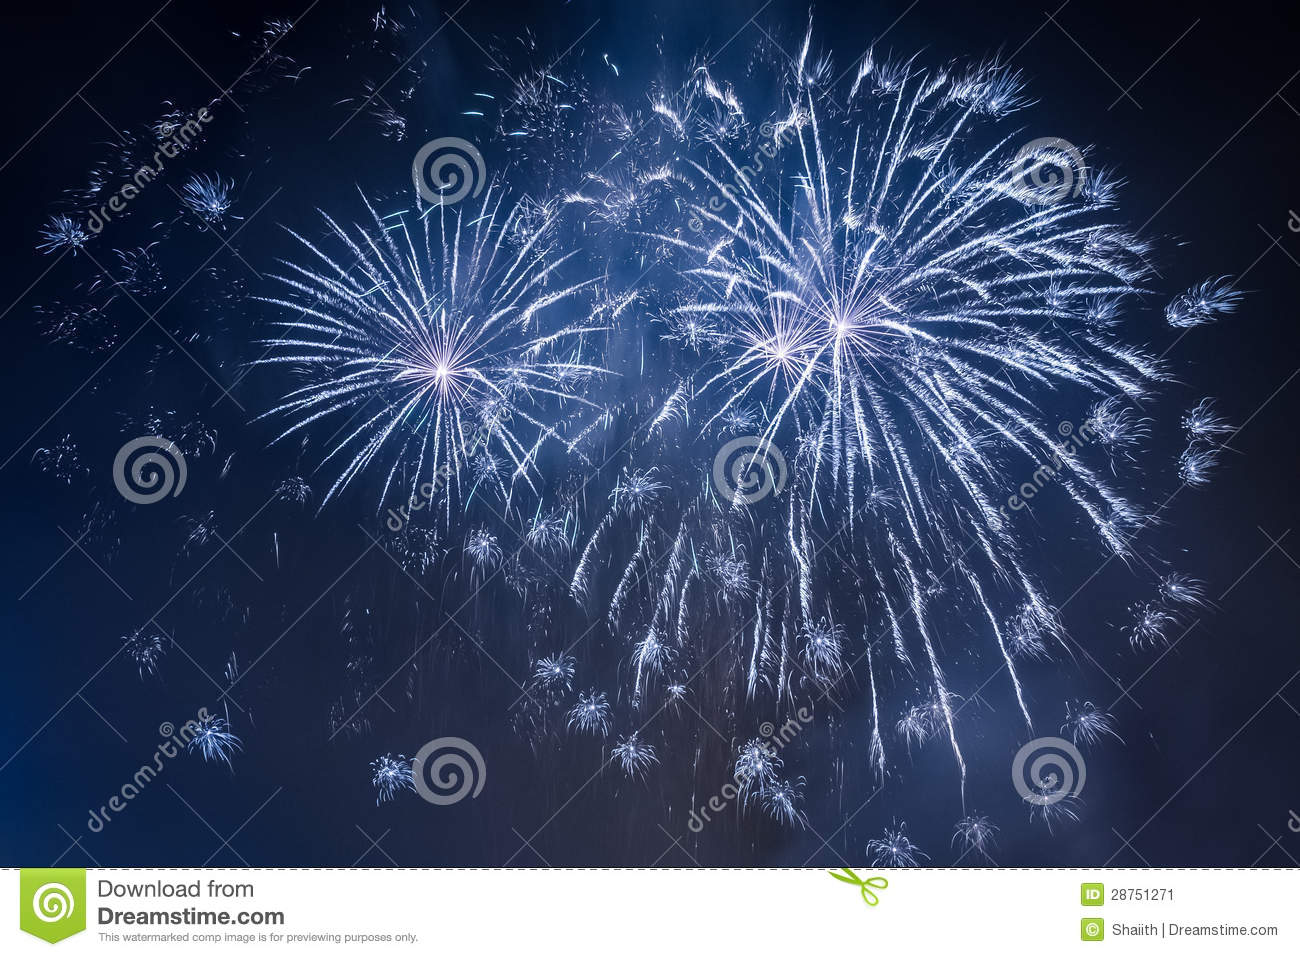 Fireworks during the celebrations event